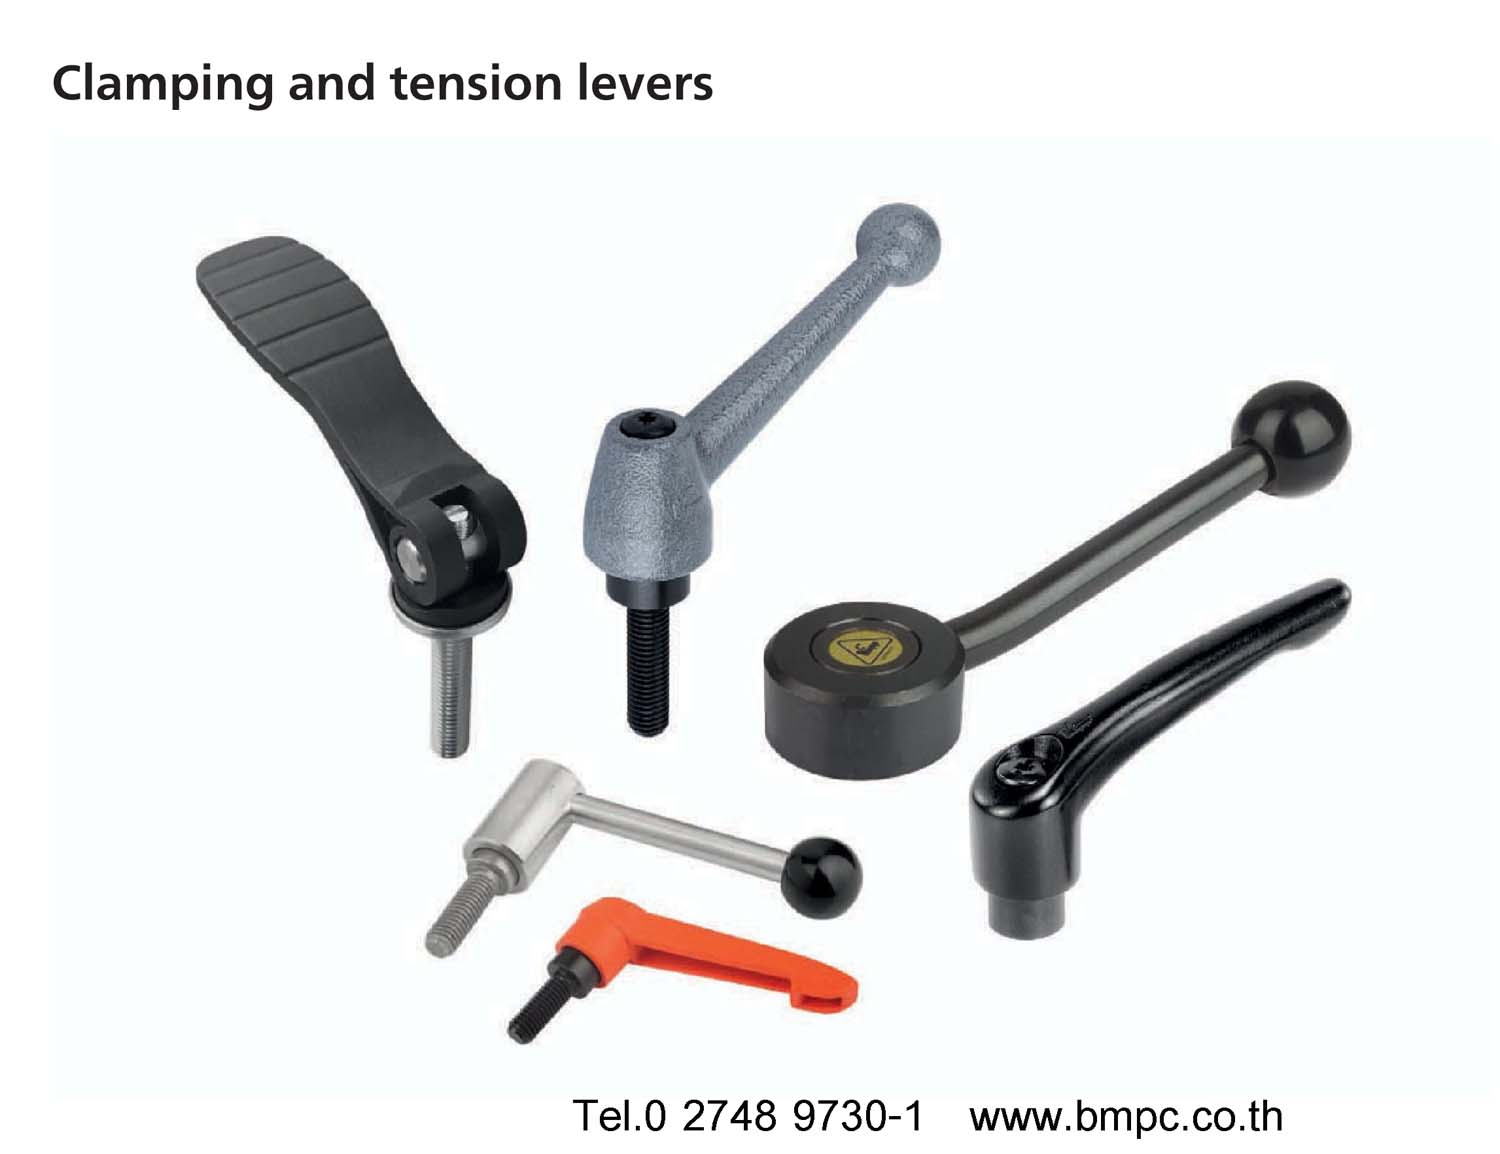 Clamp lever, ด้ามขันล๊อก, Clamp liftable handle, Tension lever, Clamping lever, Cam lever